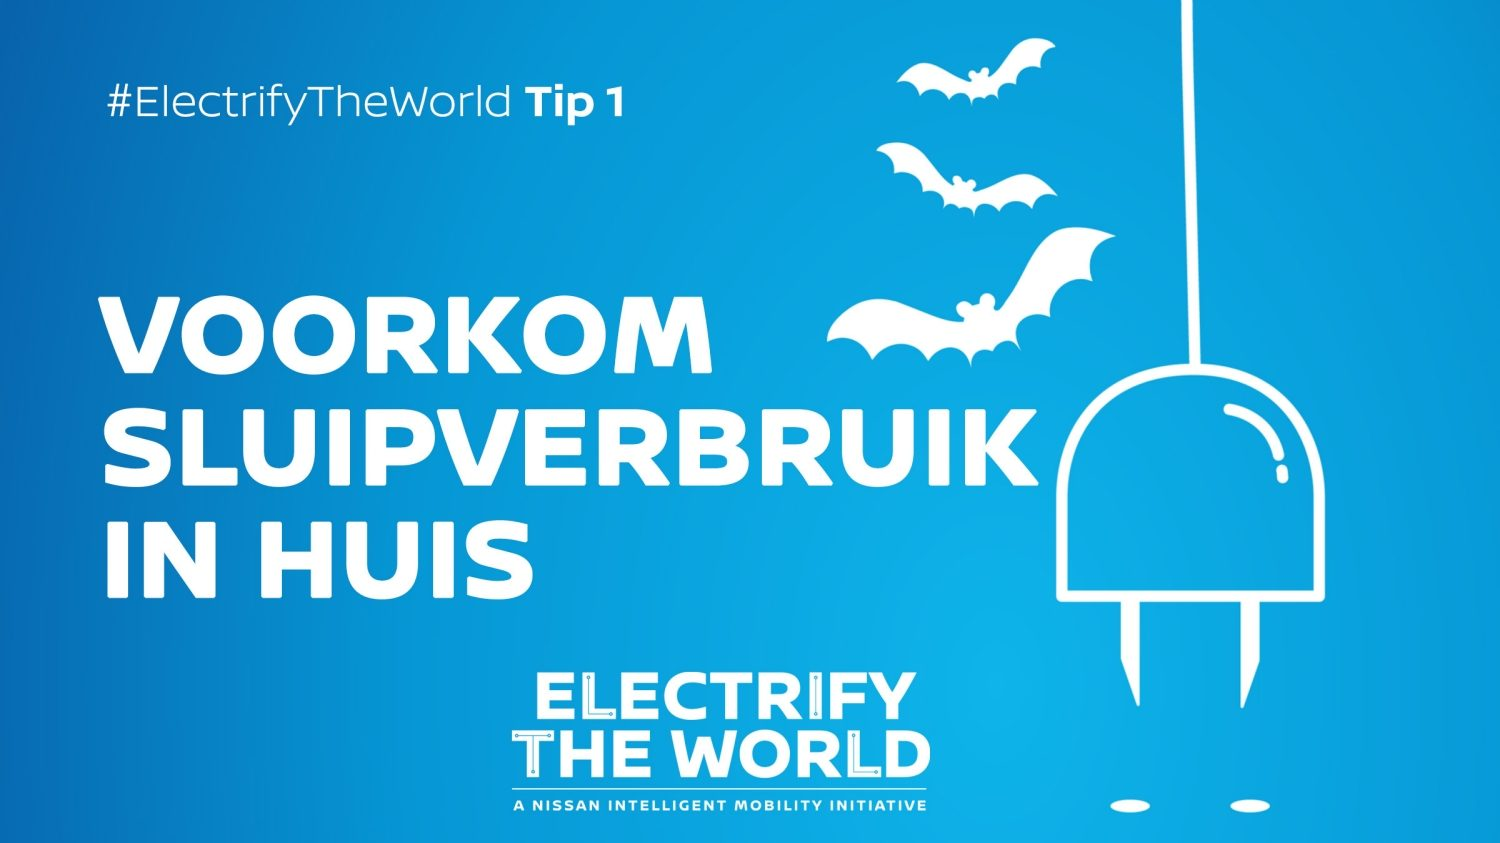 Electrify the World - Sluipverbruik